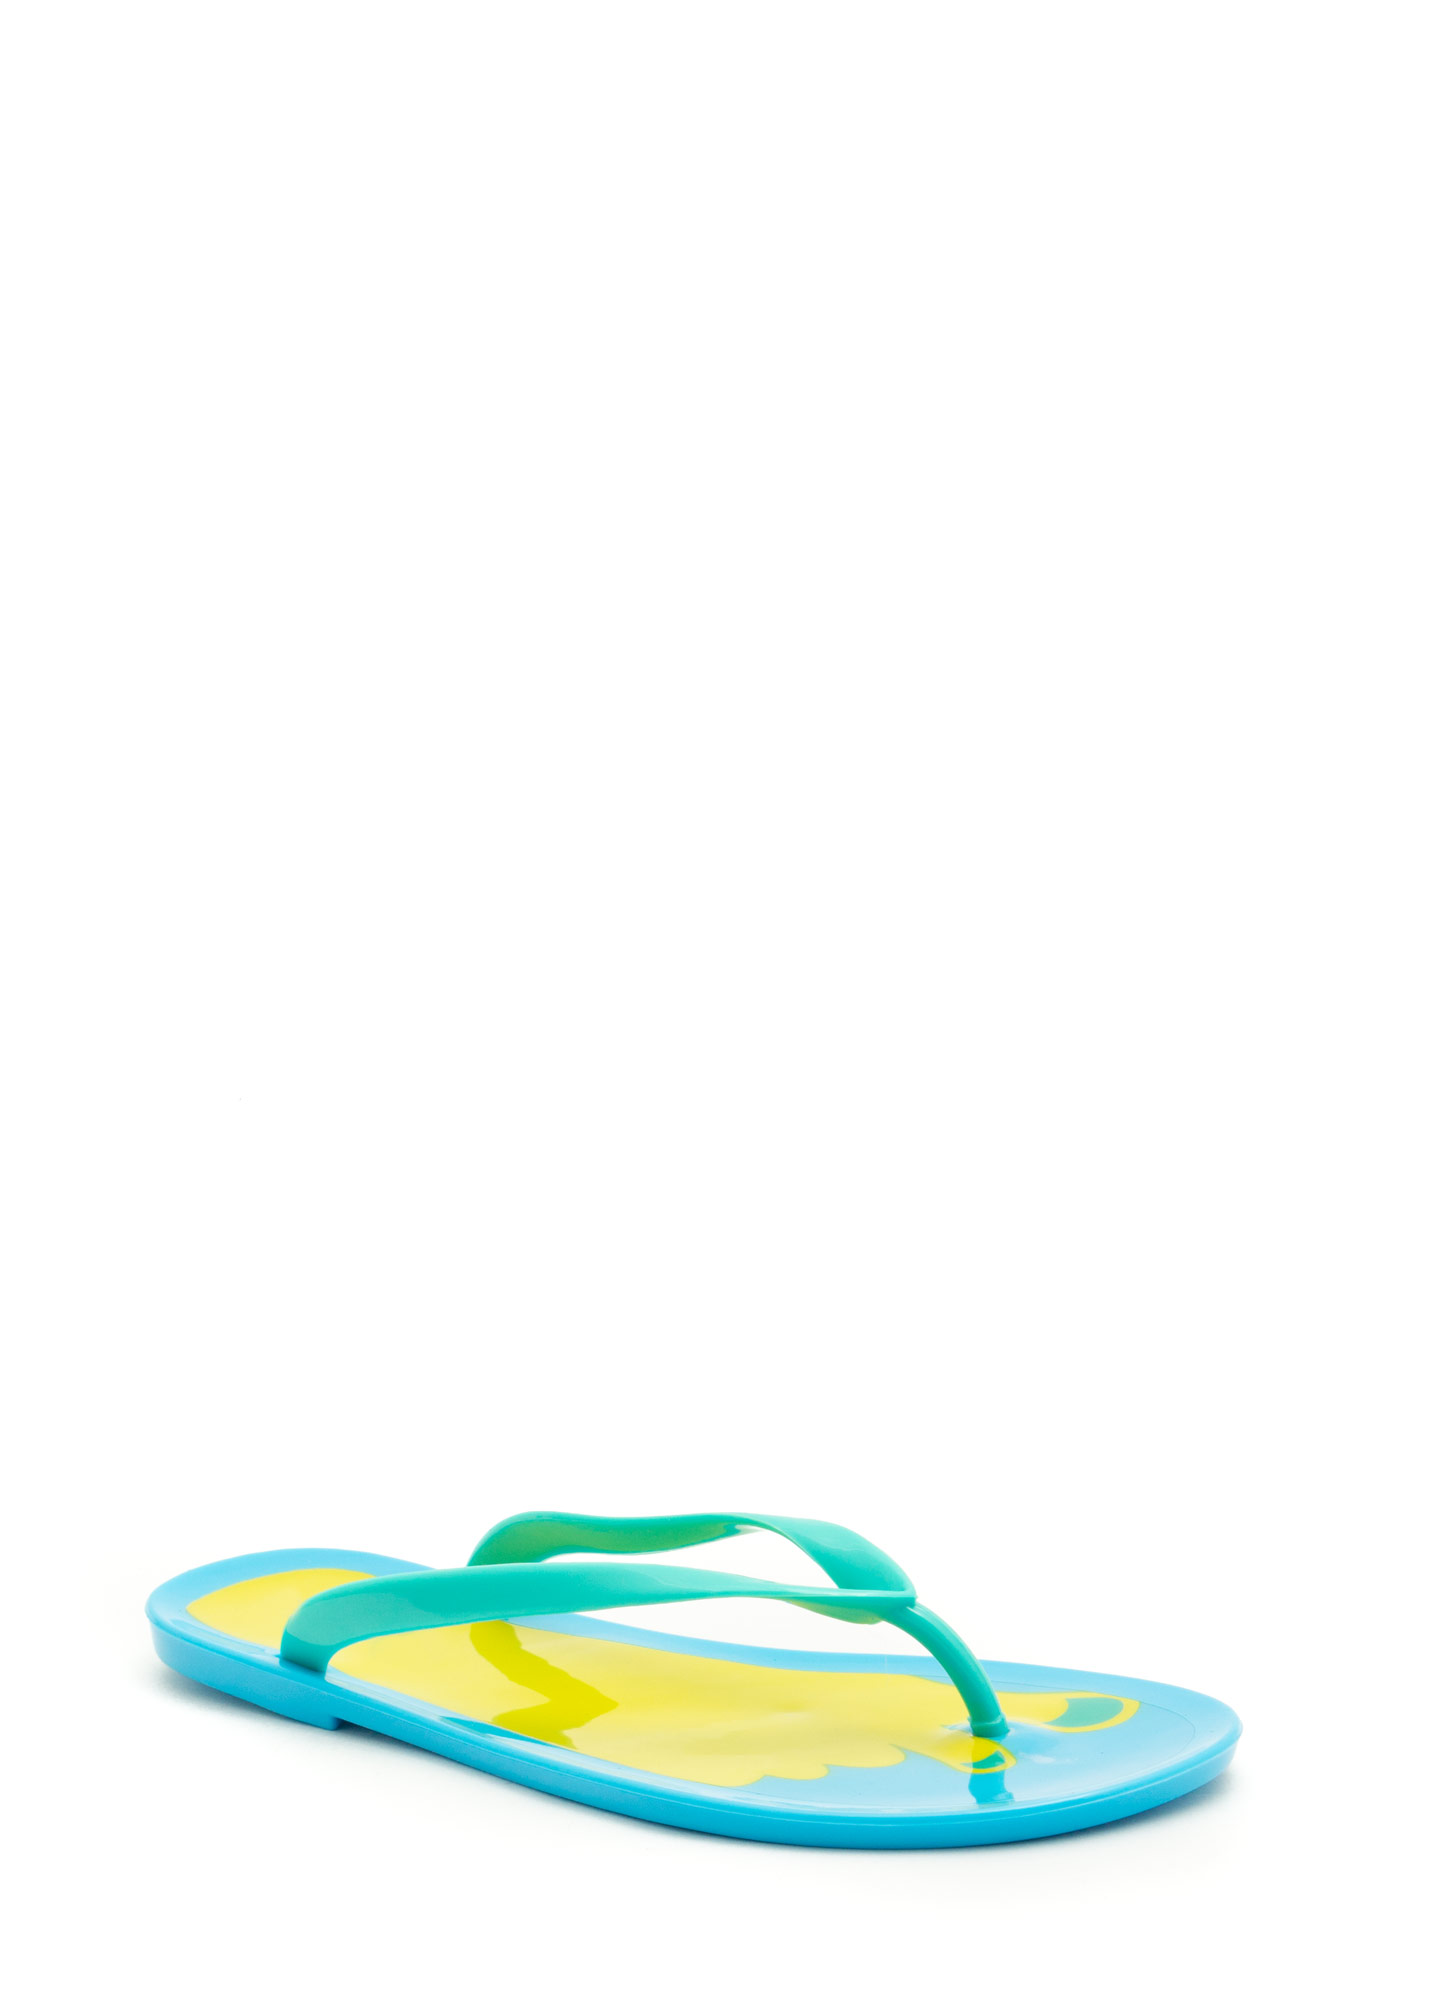 Jump In With Both Feet Thong Sandals SEAFOAM